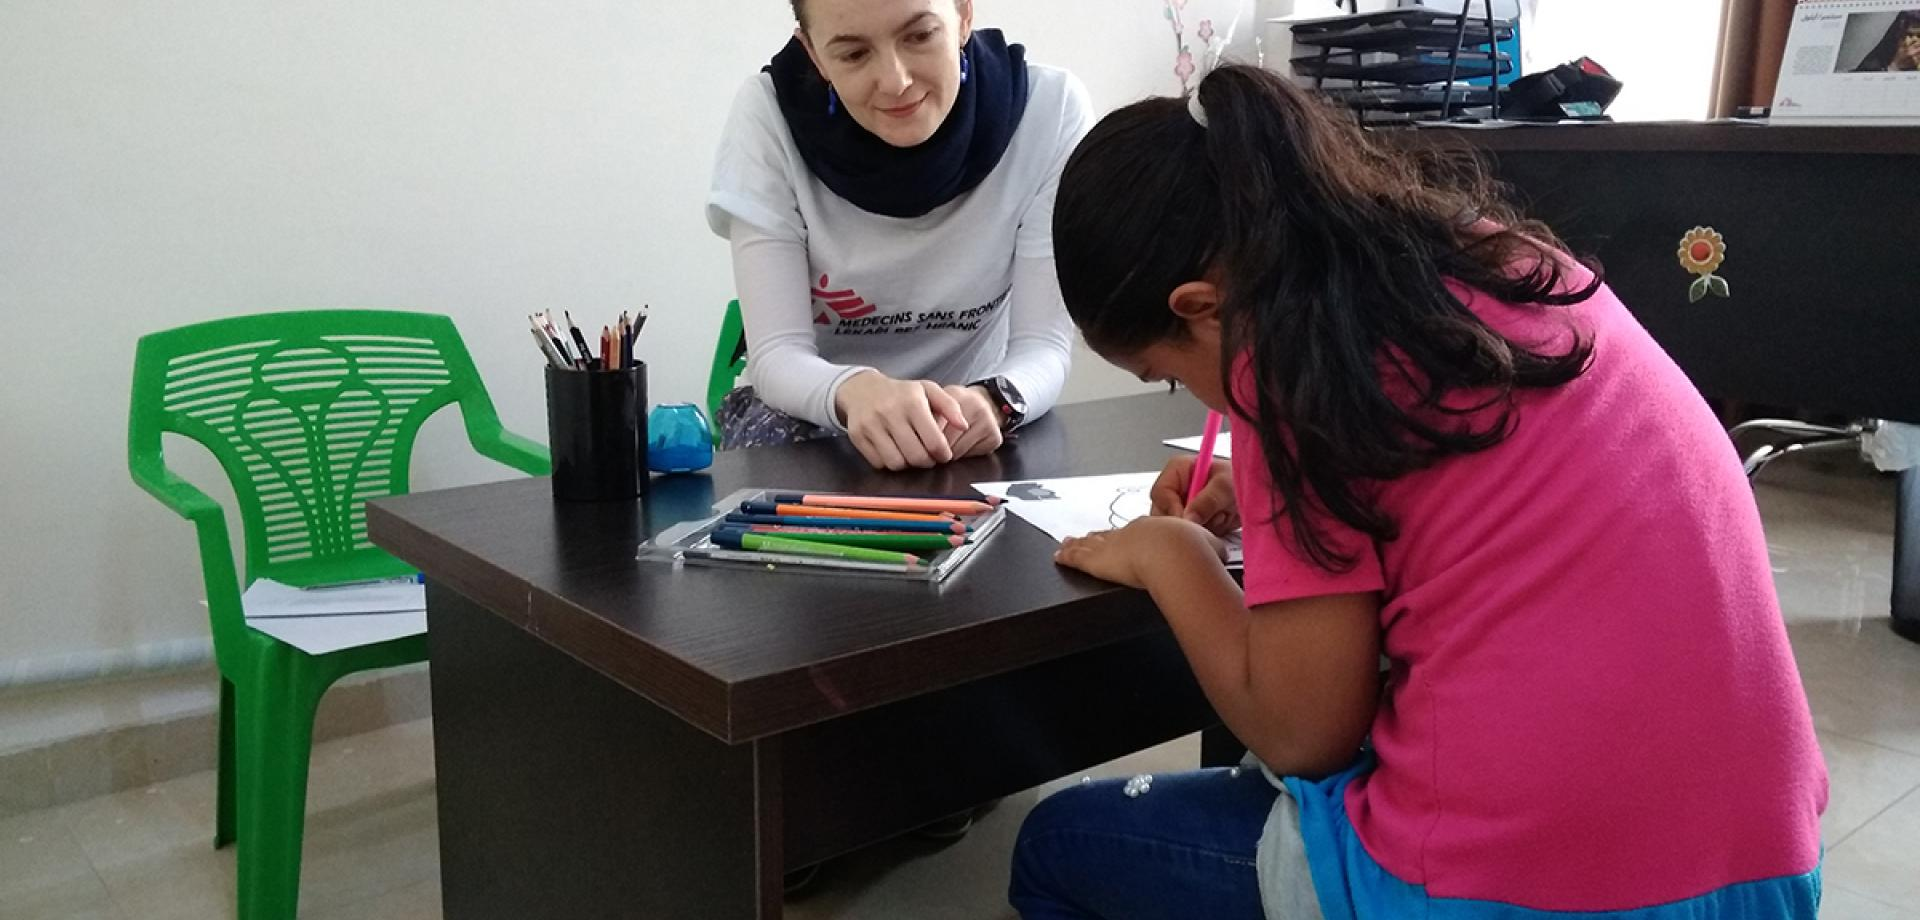 MSF psychologist Kateřina Šrahůlková and a girl draw pictures together